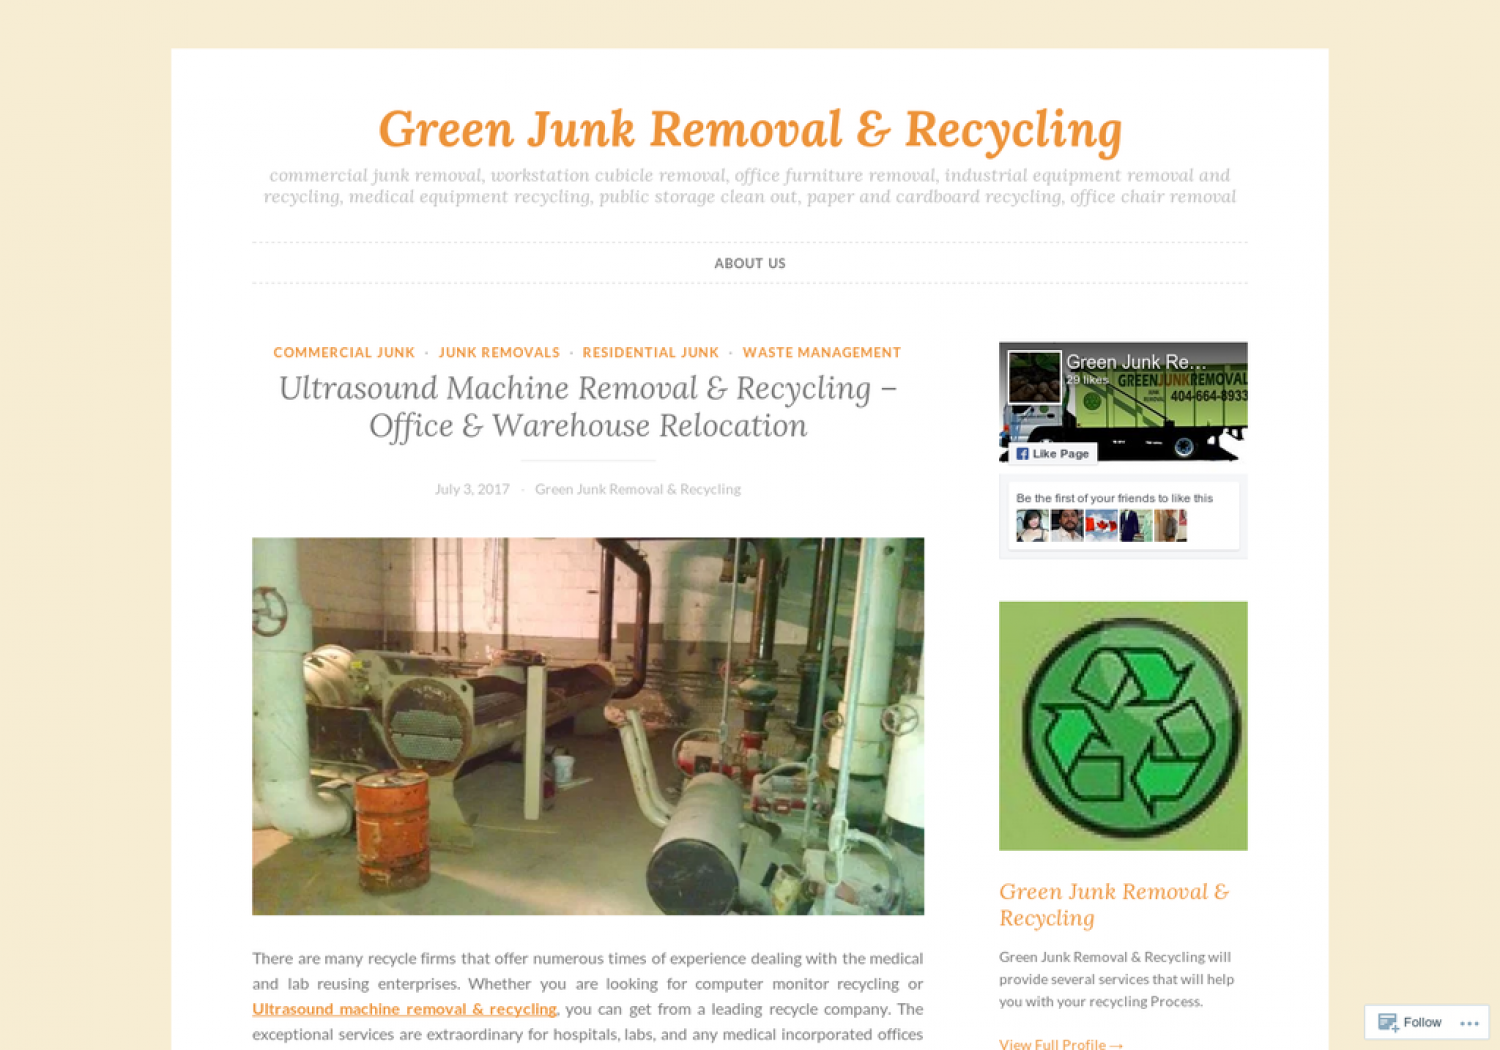 Ultrasound Machine Removal & Recycling Infographic